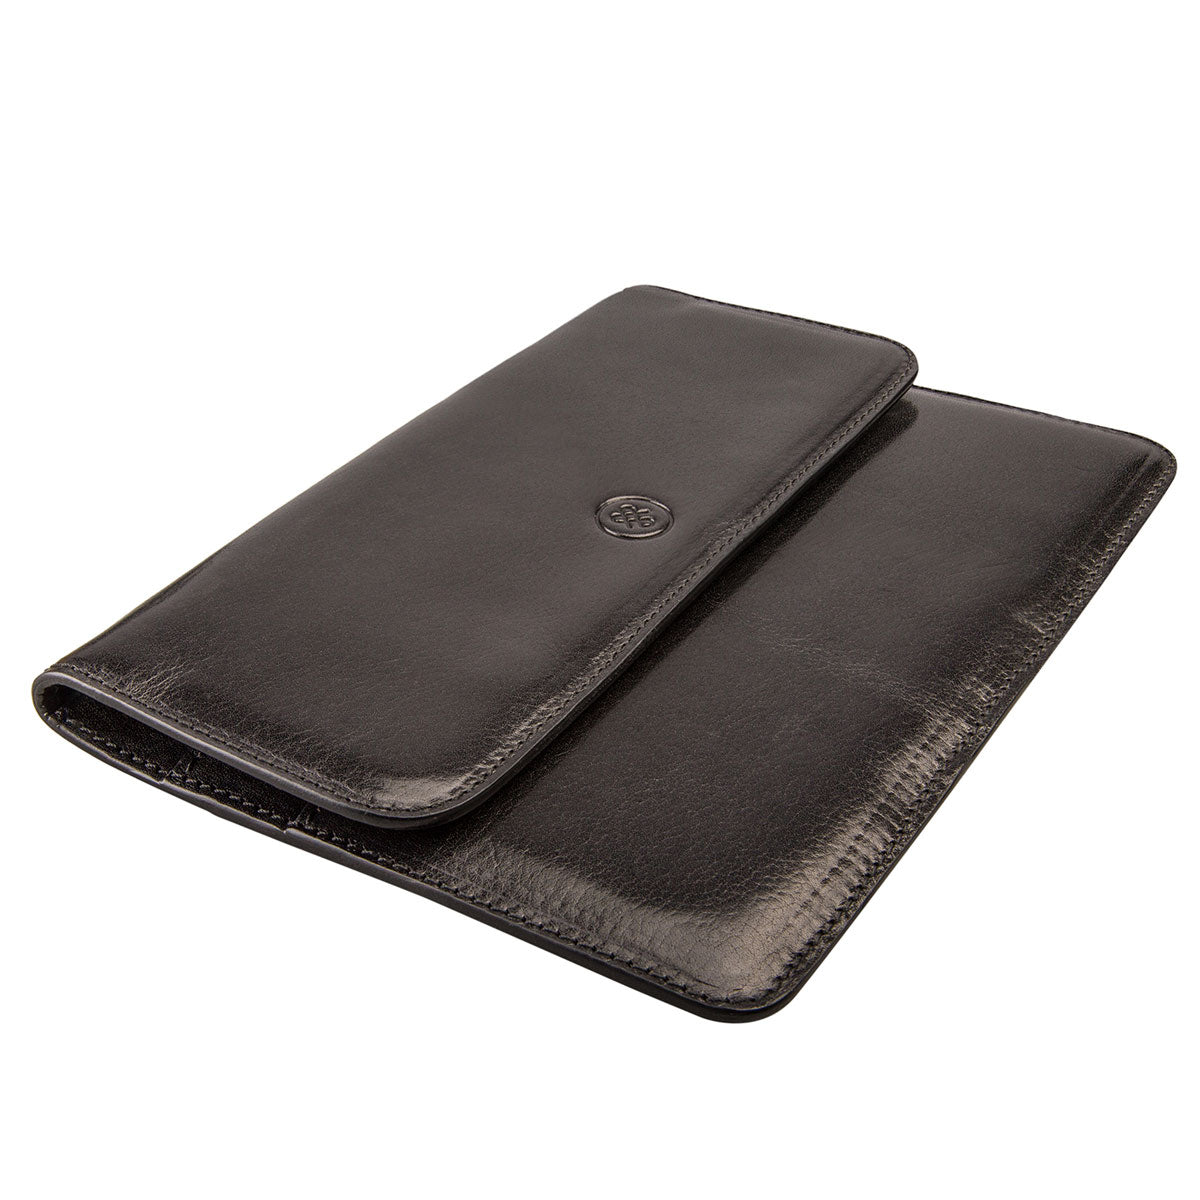 Image 4 of the 'Torrino' Black Veg-Tanned Leather Travel Wallet